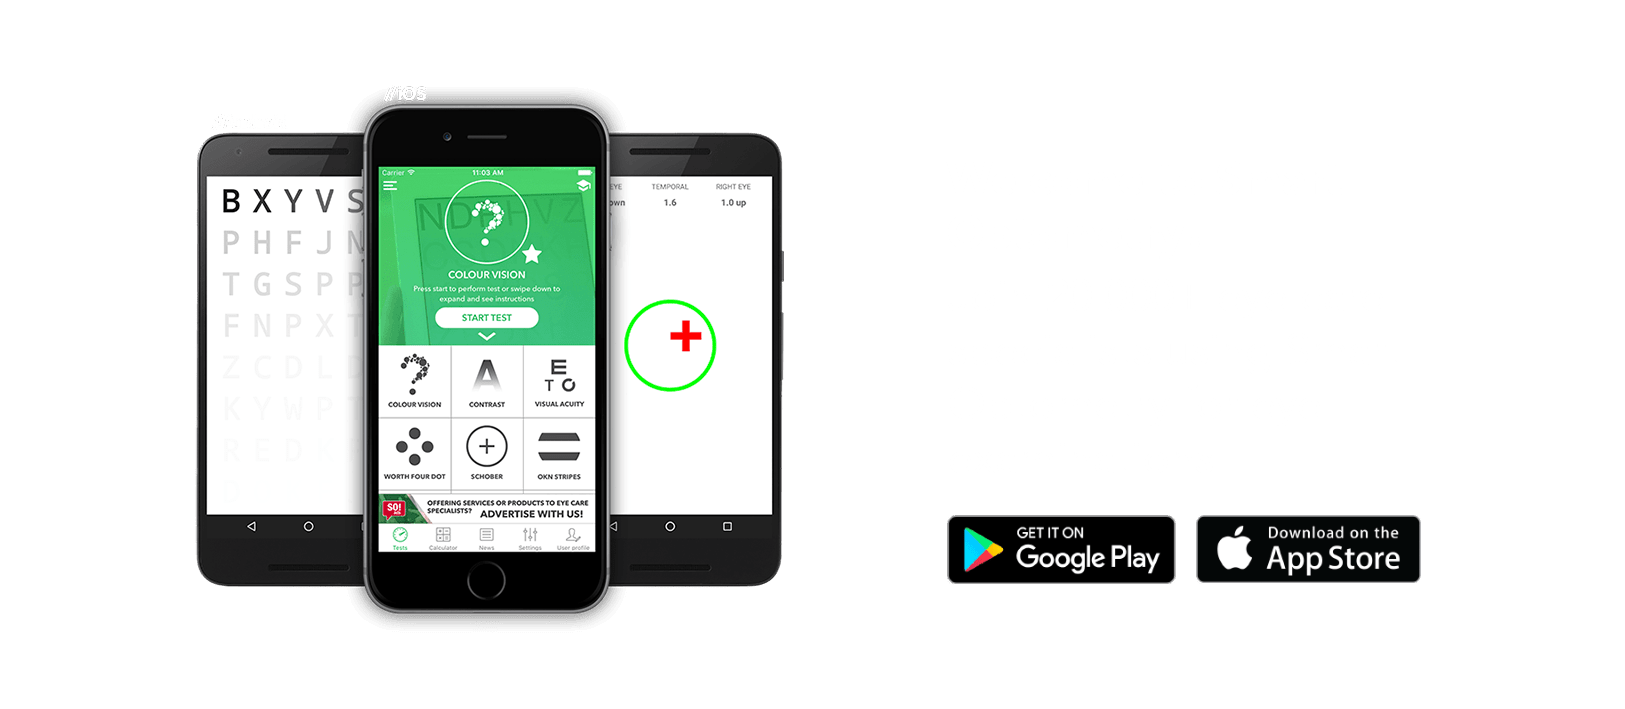 Smart Optometry – Smart up your vision!